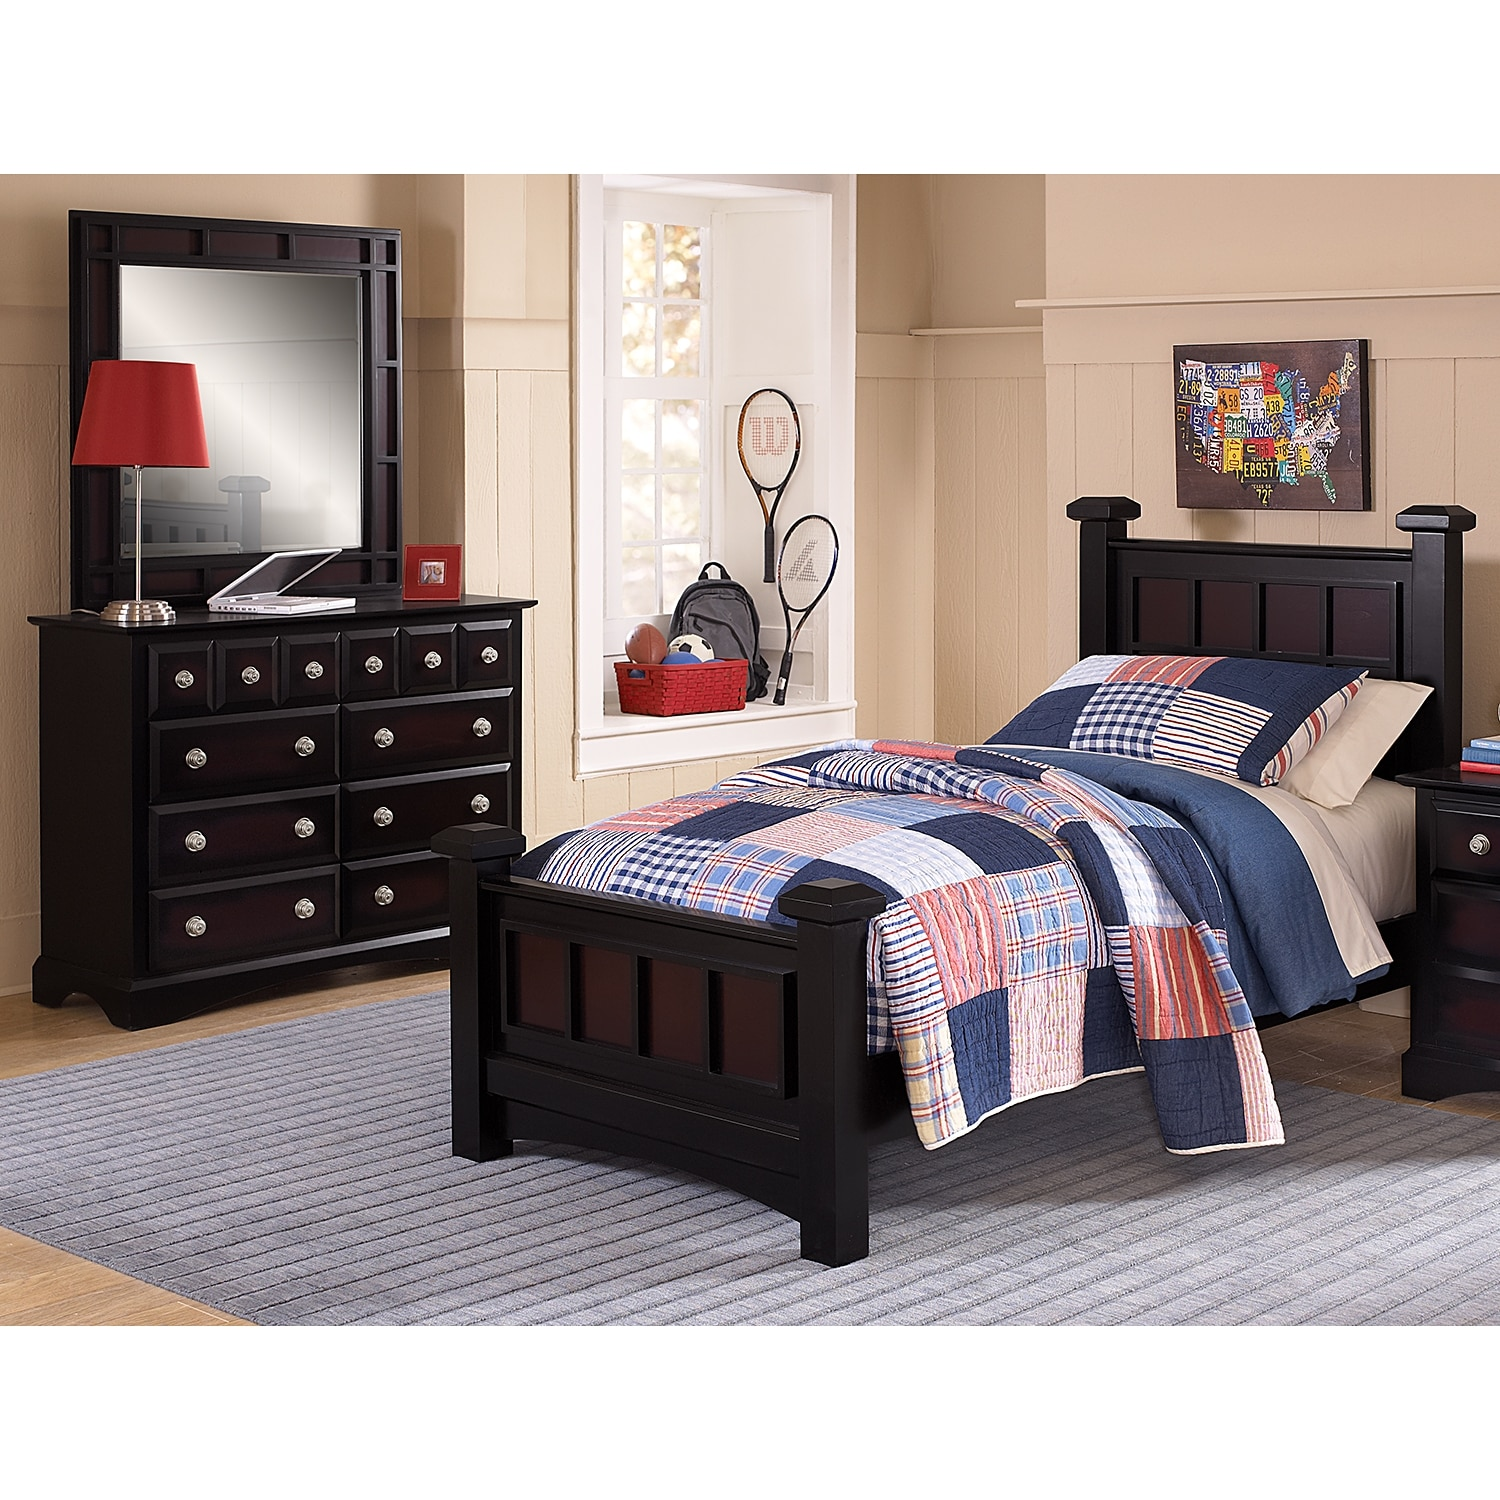 Bedroom Furniture Winchester 5 Piece Full Set Black And Burnished Merlot